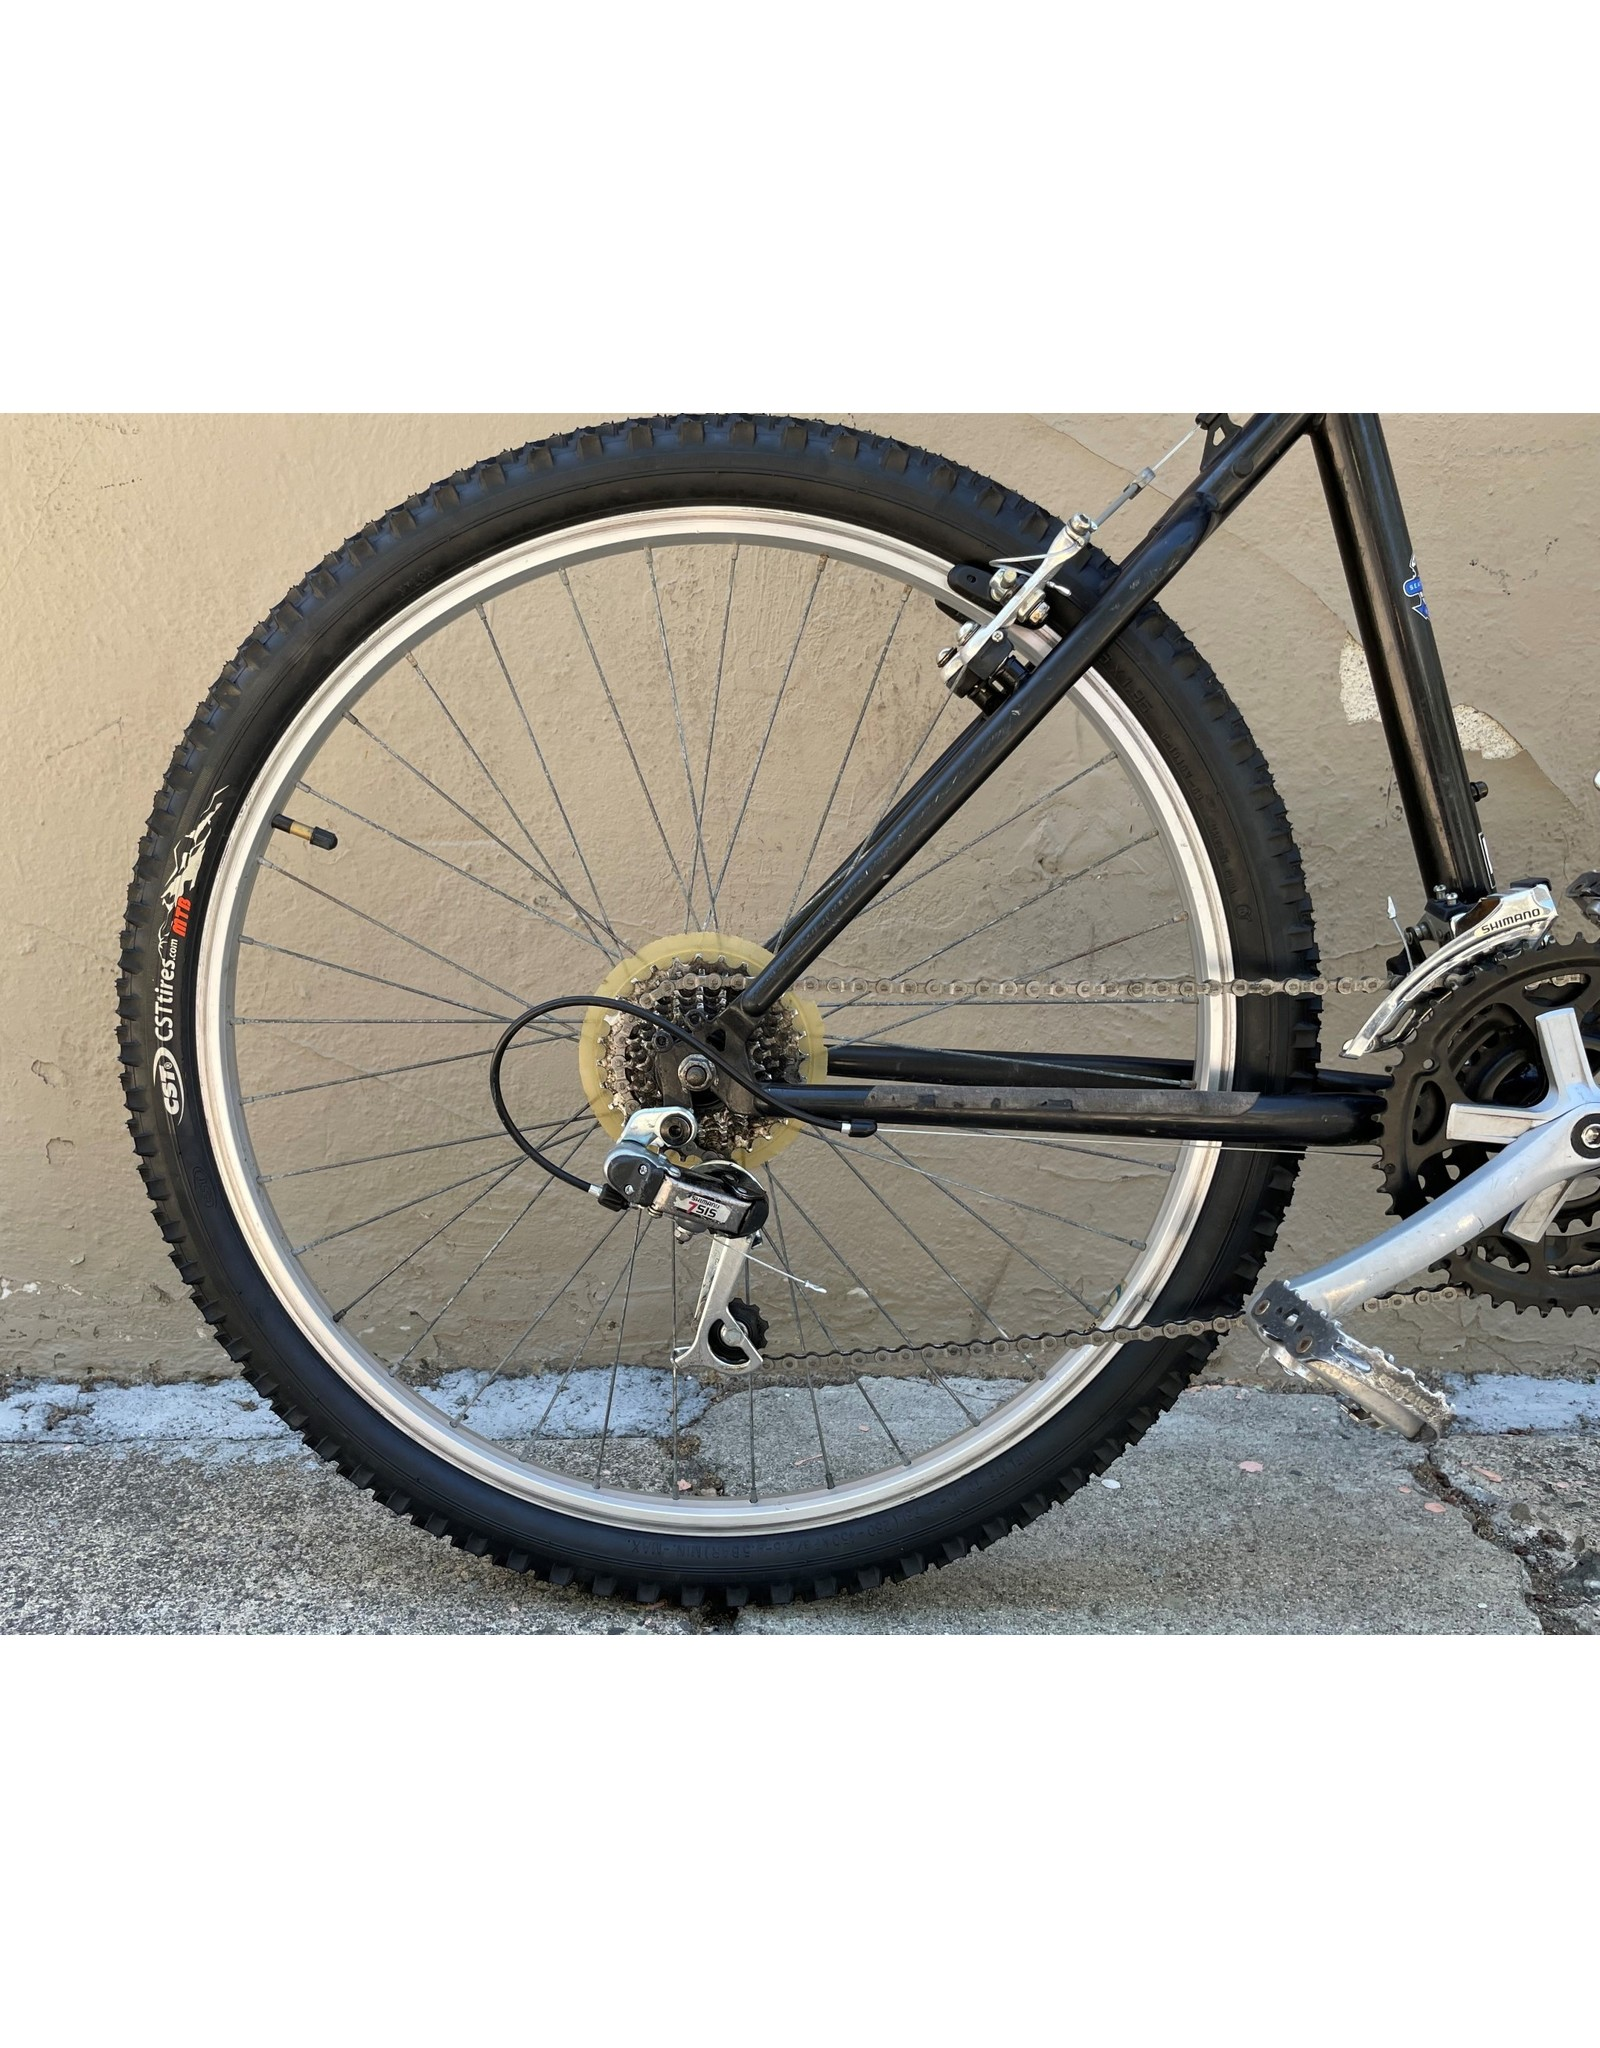 Giant Giant Boulder, 17.5 Inches, Black